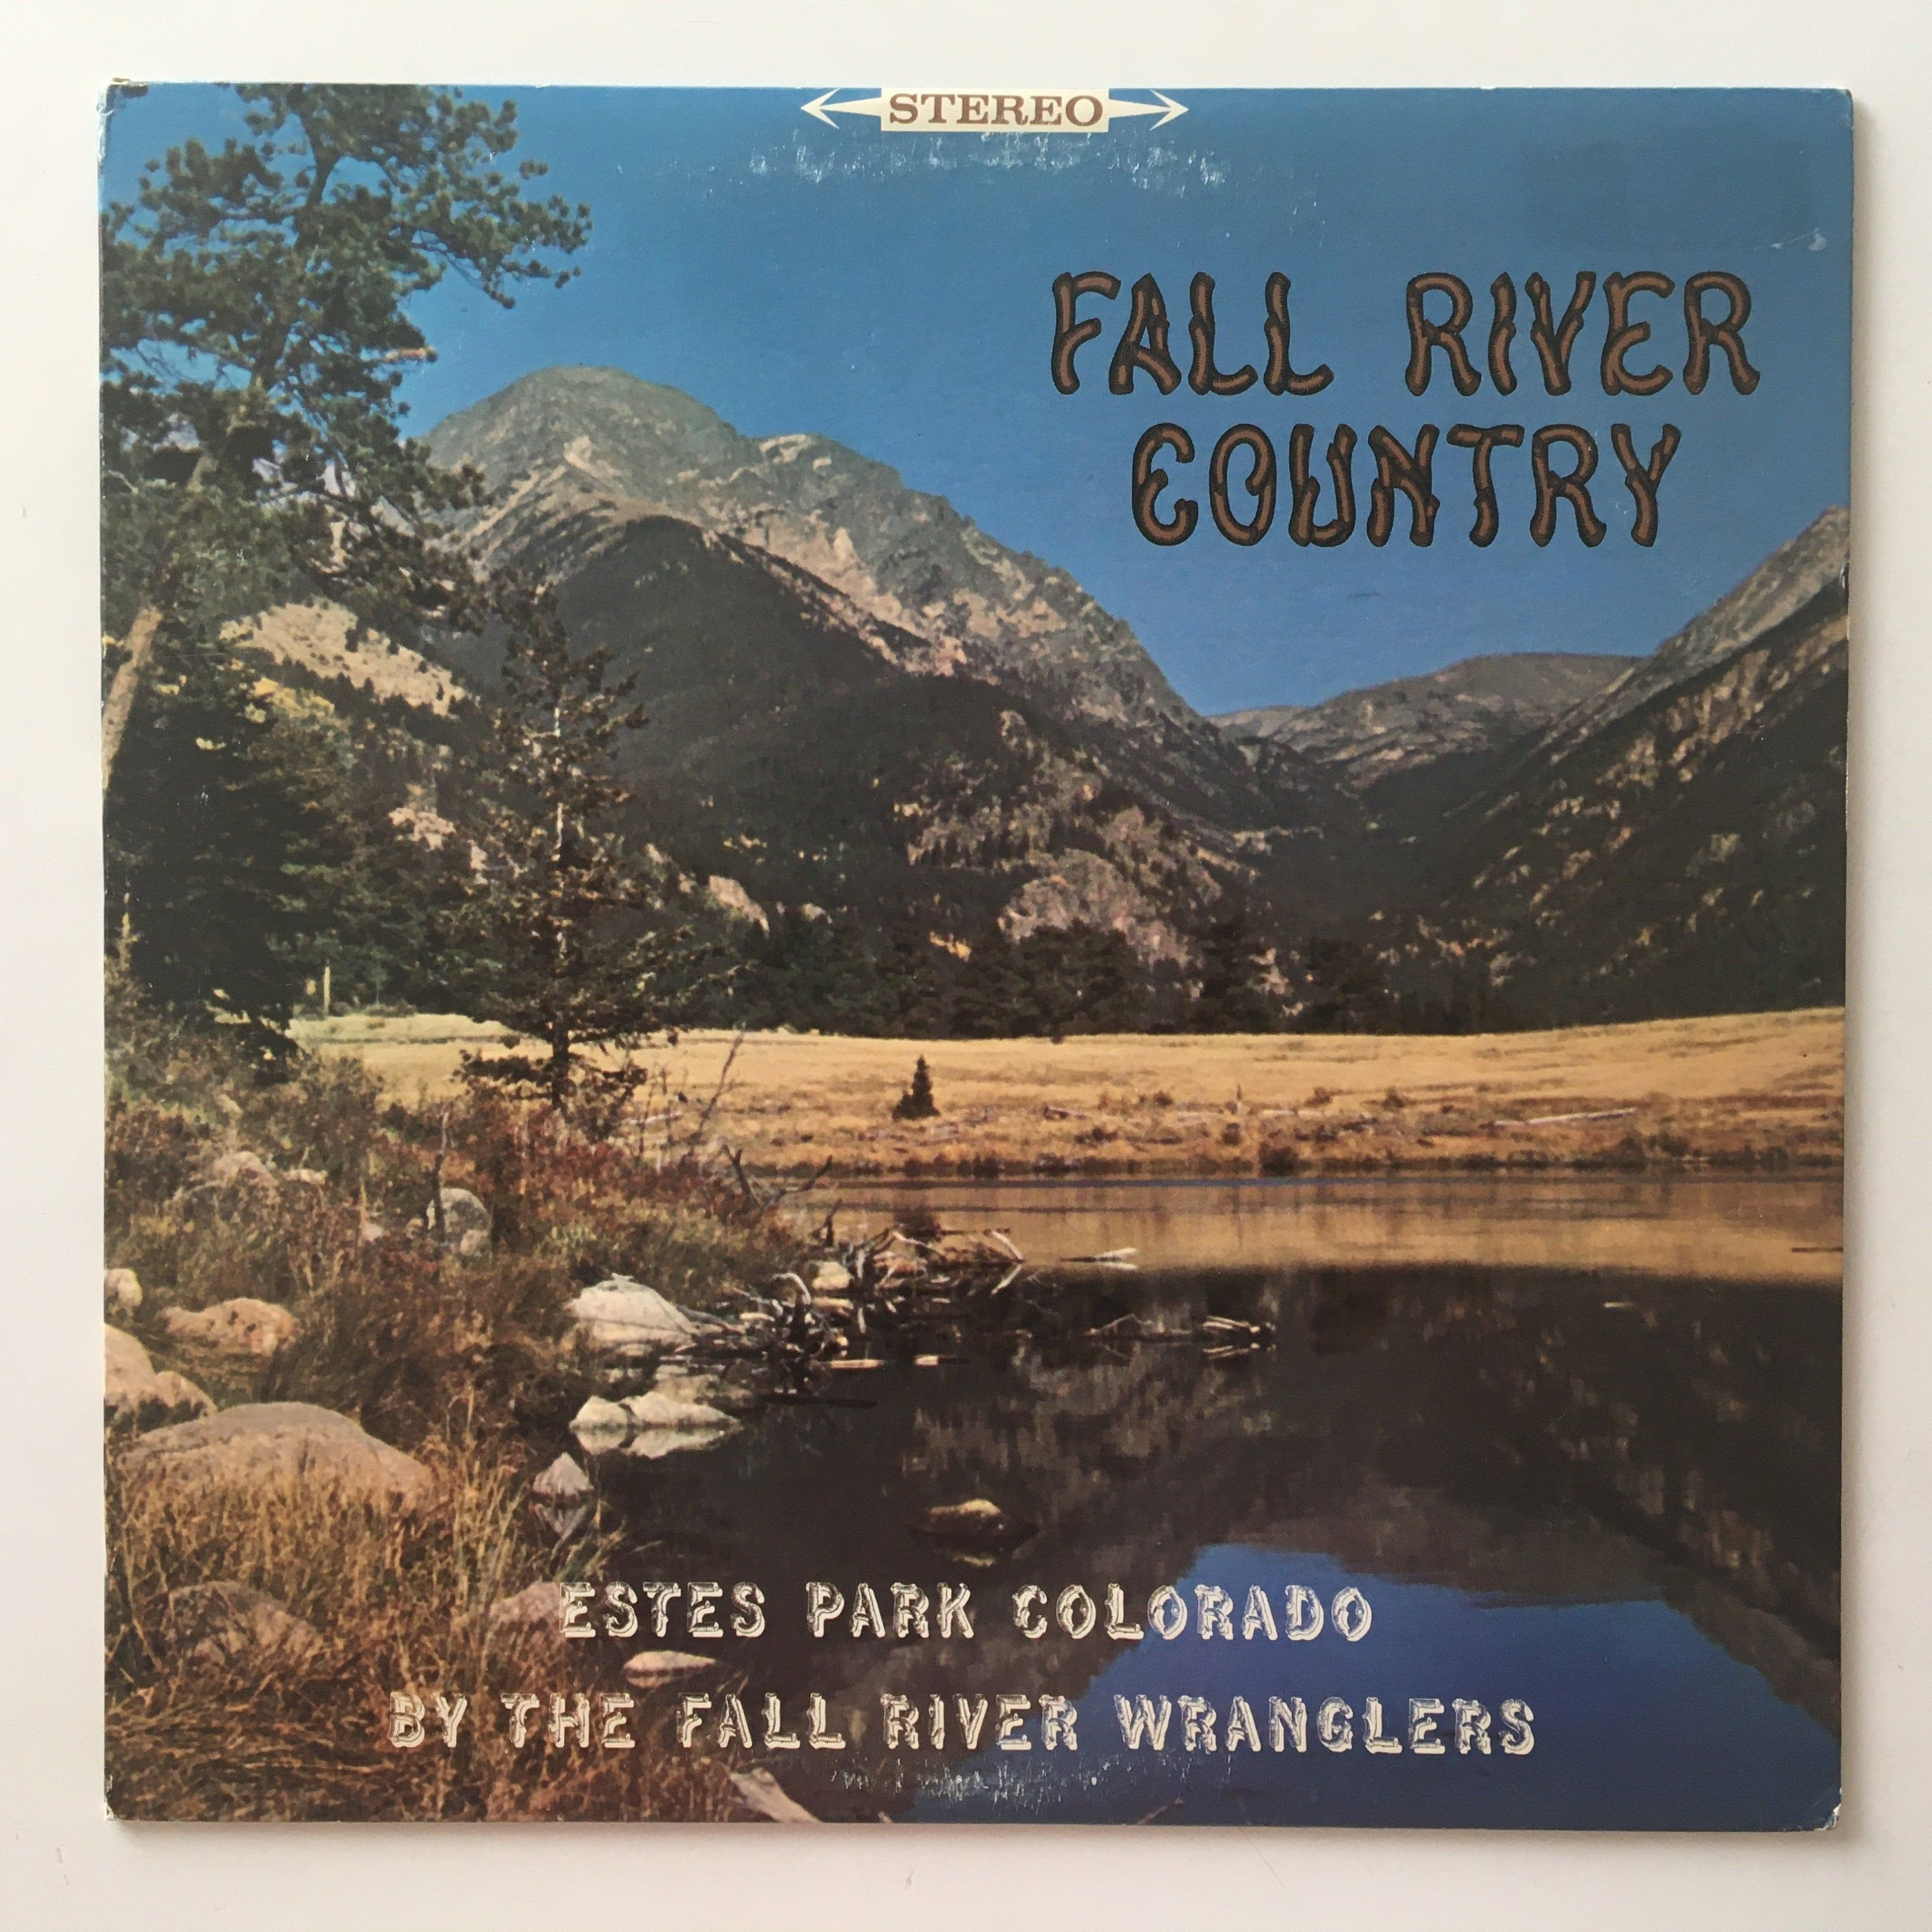 Fall River Wranglers Fall River Country LP Vinyl Record  Etsy